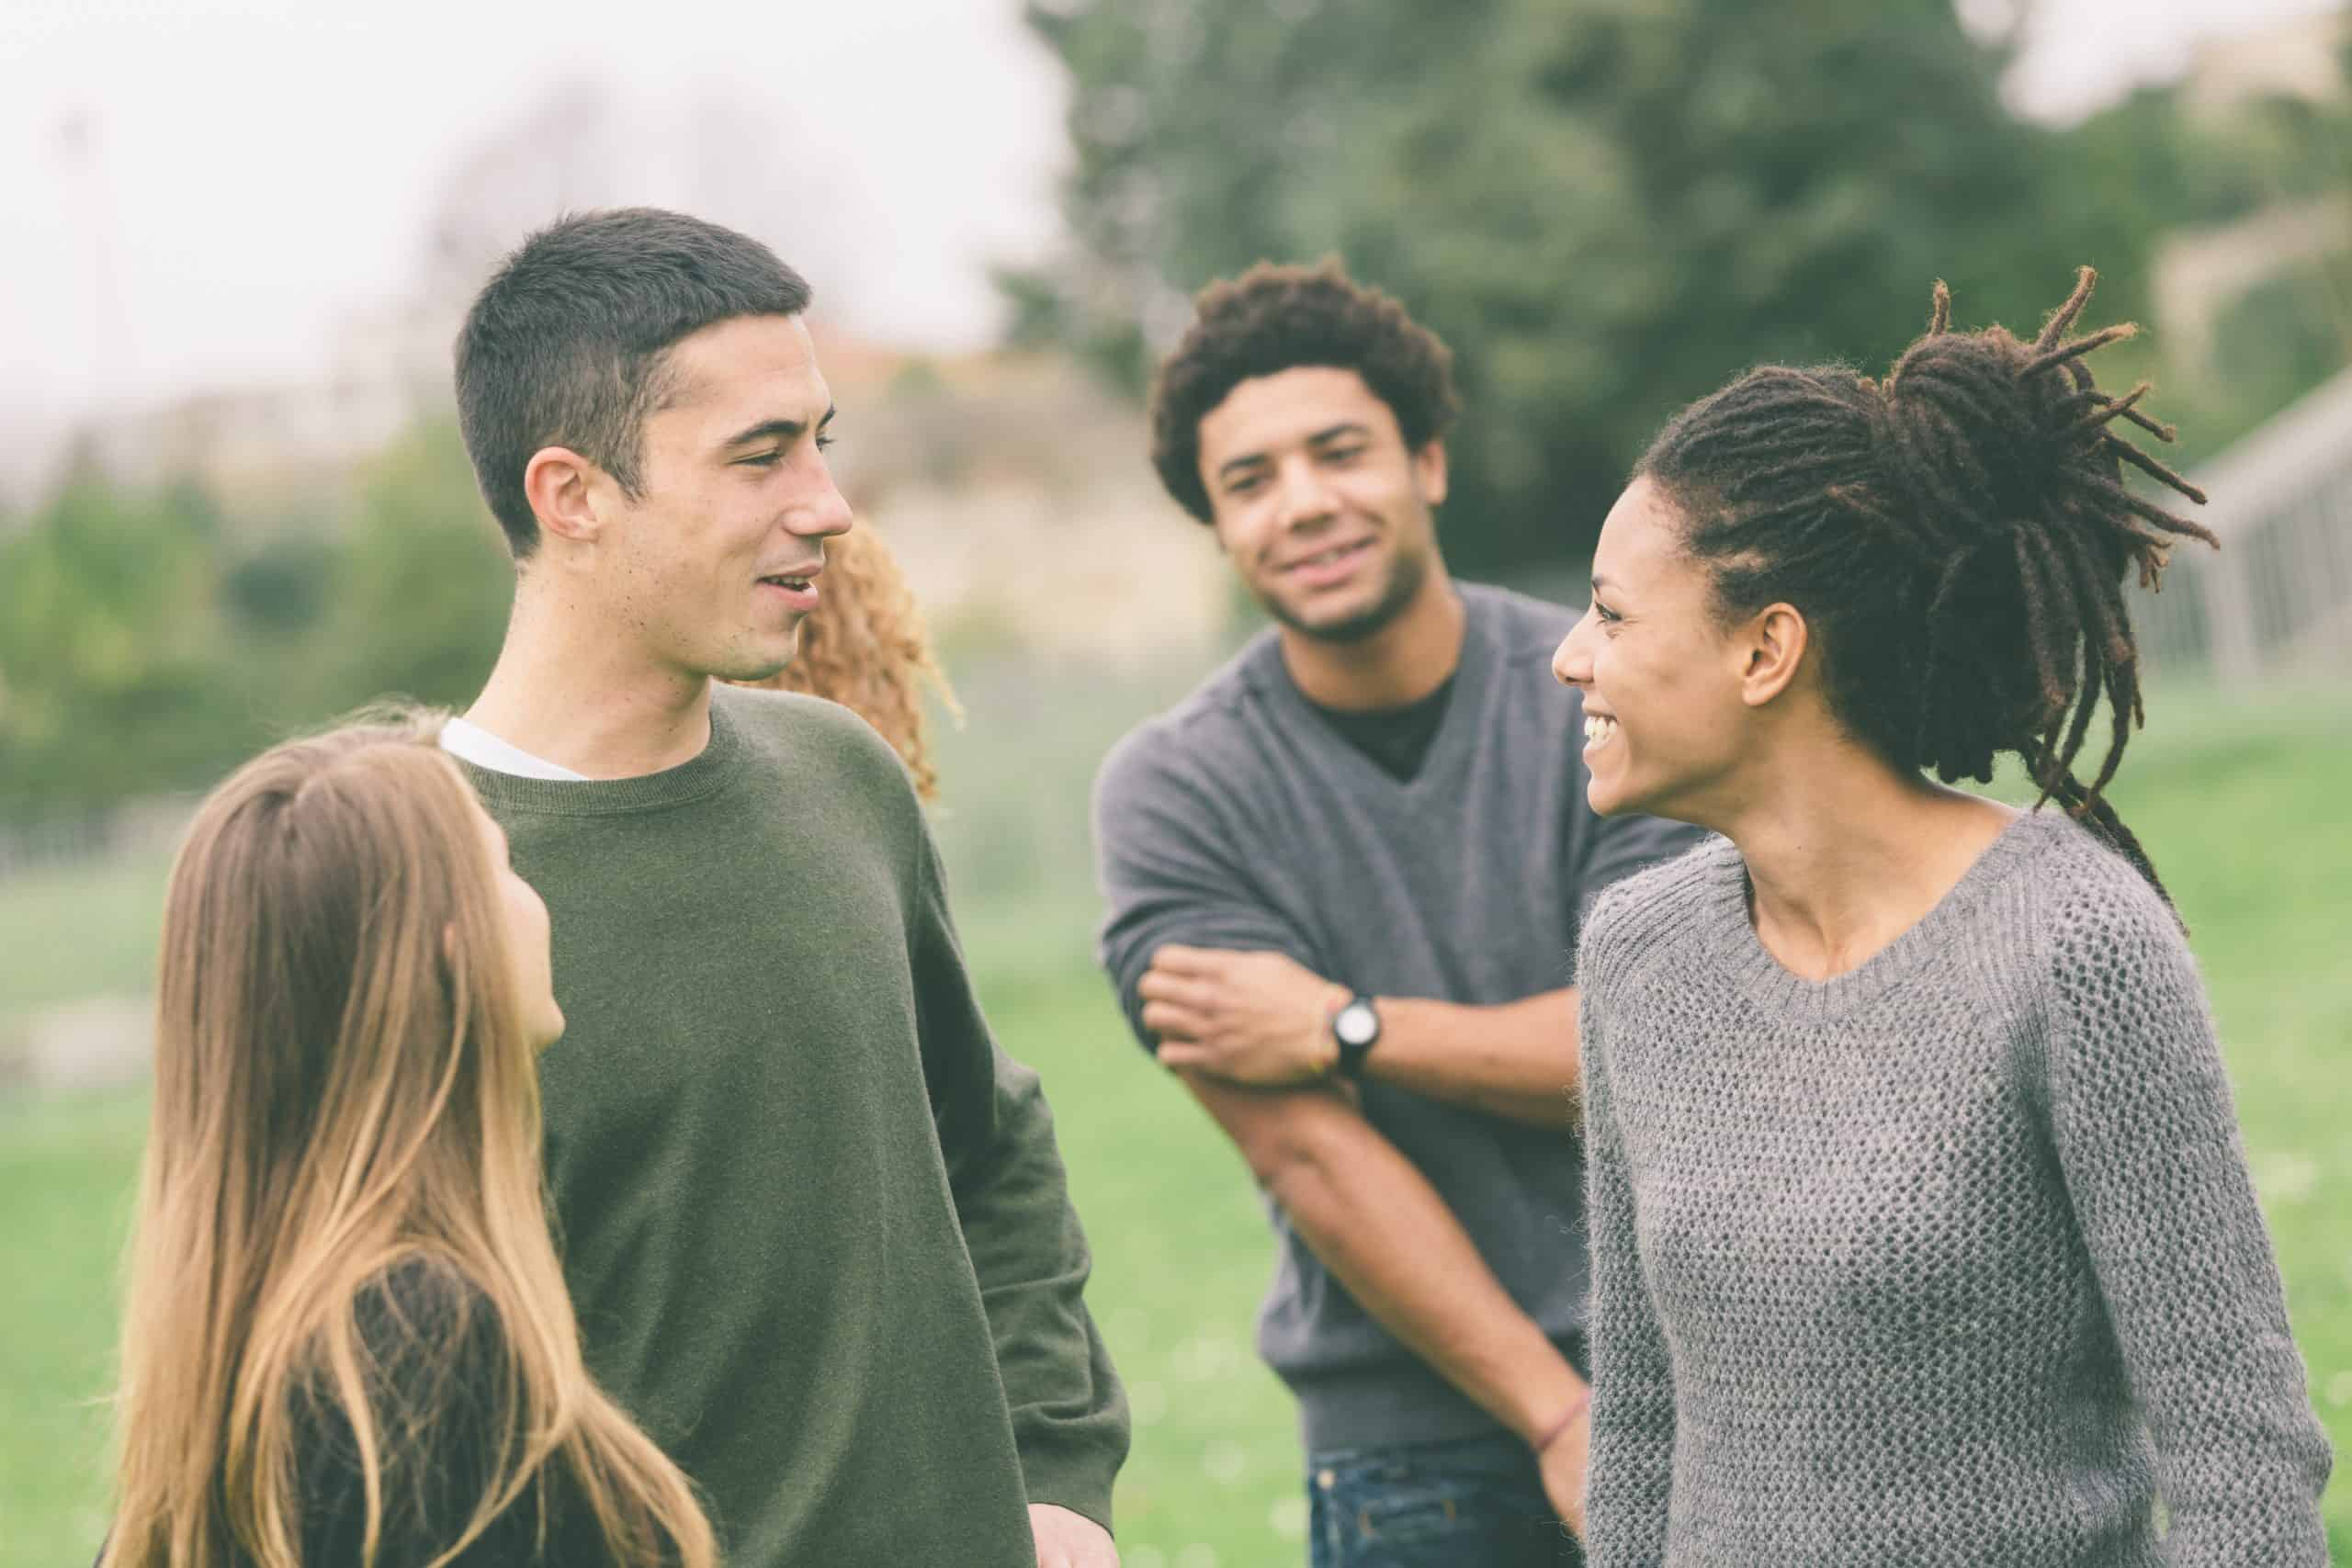 group of young adults talking